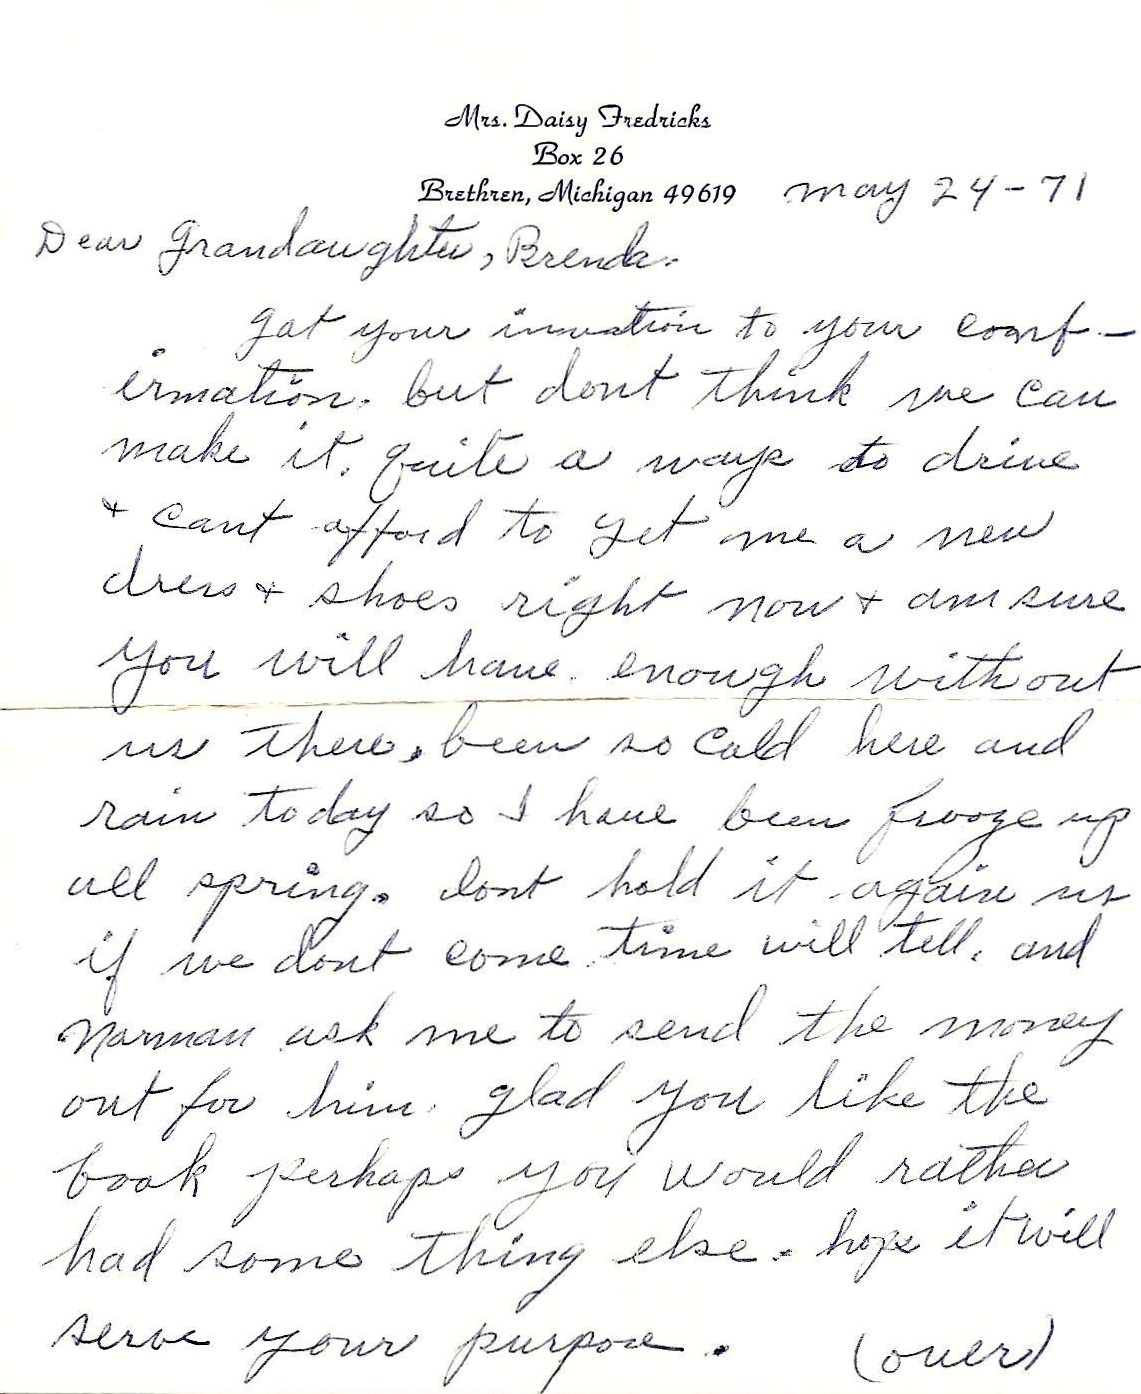 my grandmother wrote me this letter for my confirmation in 1971 i think it is a good representation of who she was she grew up with very humble beginnings